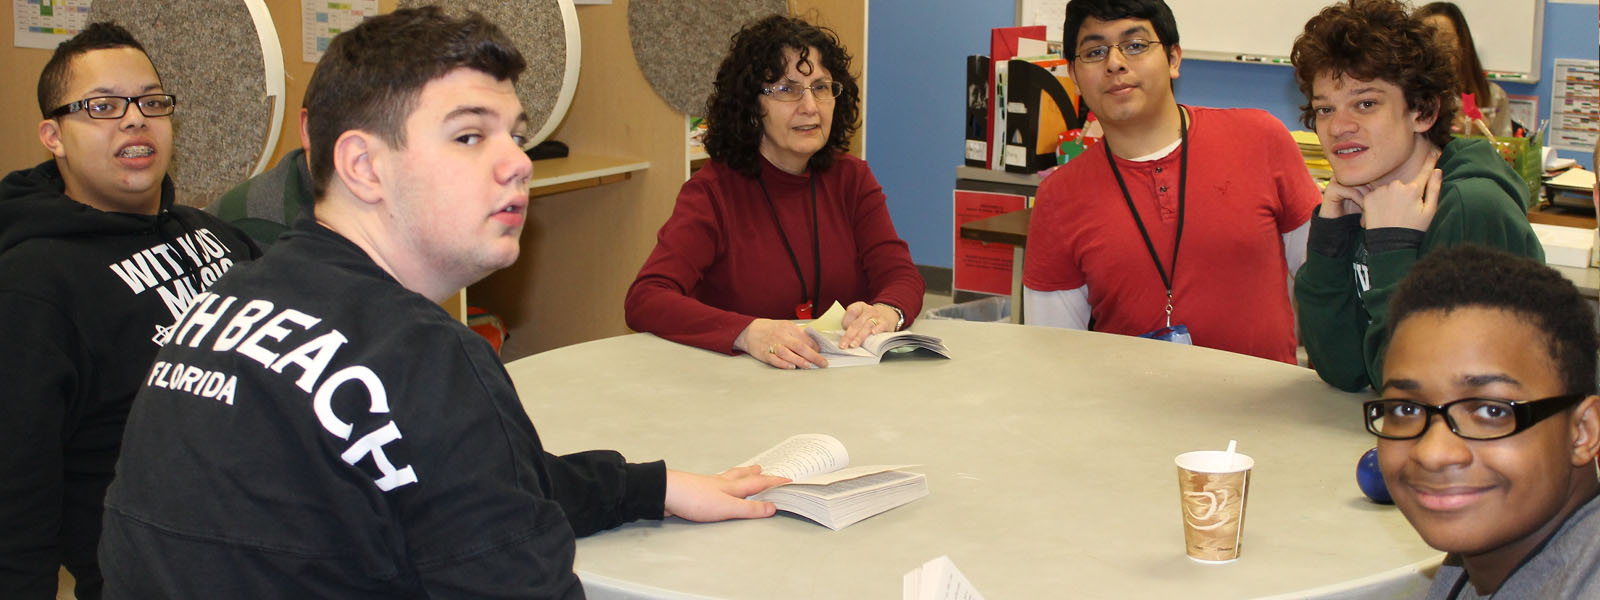 Teacher with students at New Road School Somerset - - private special education school in Somerset NJ